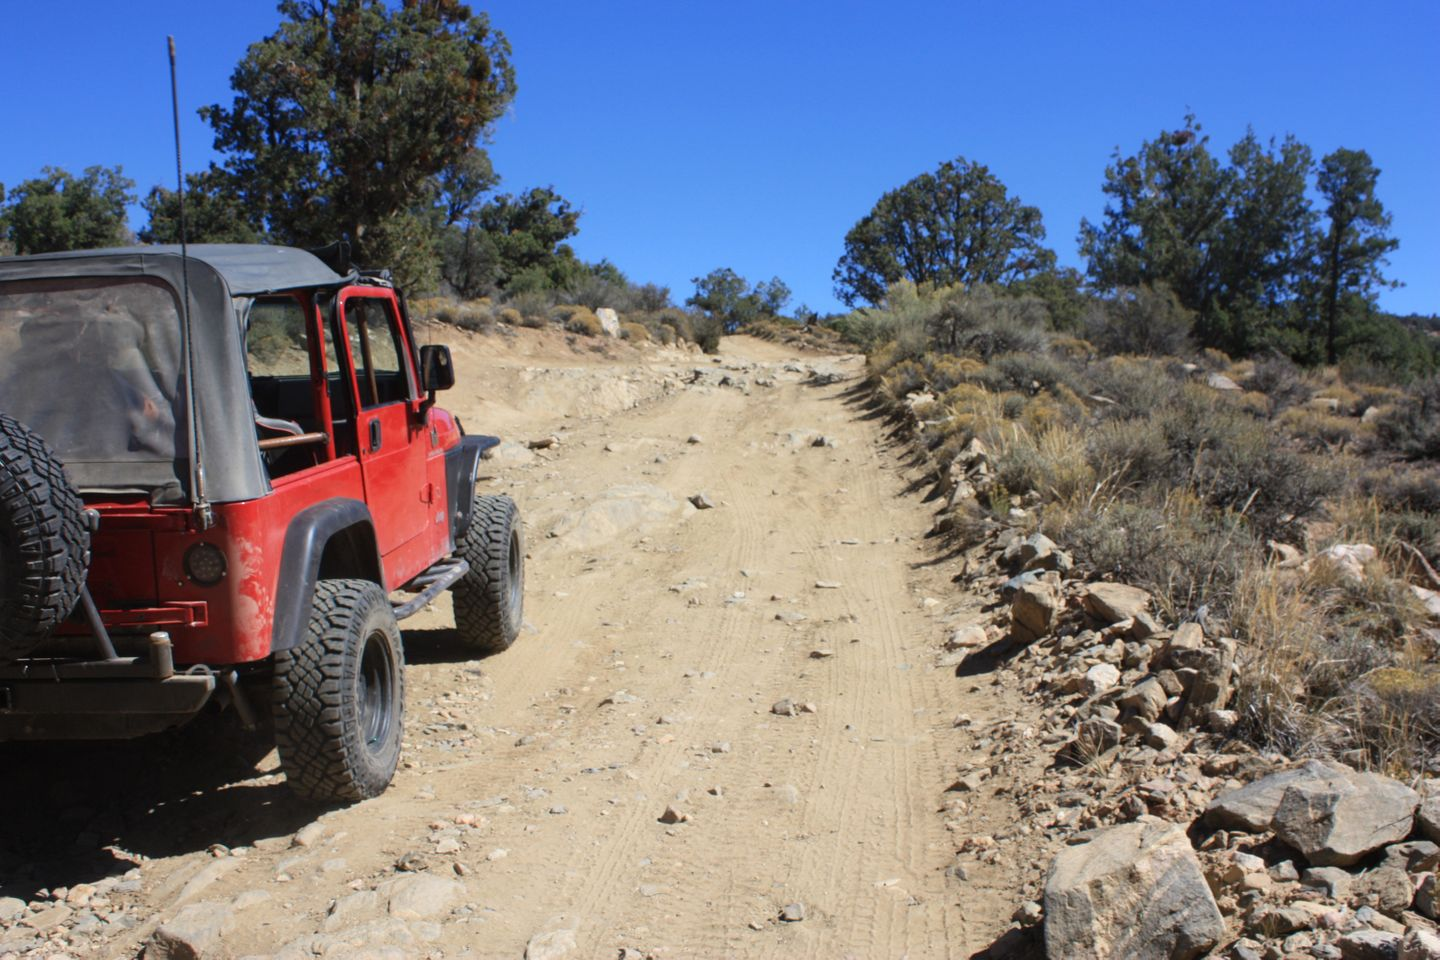 2N02 - Burns Canyon - Waypoint 8: Small Rock Face